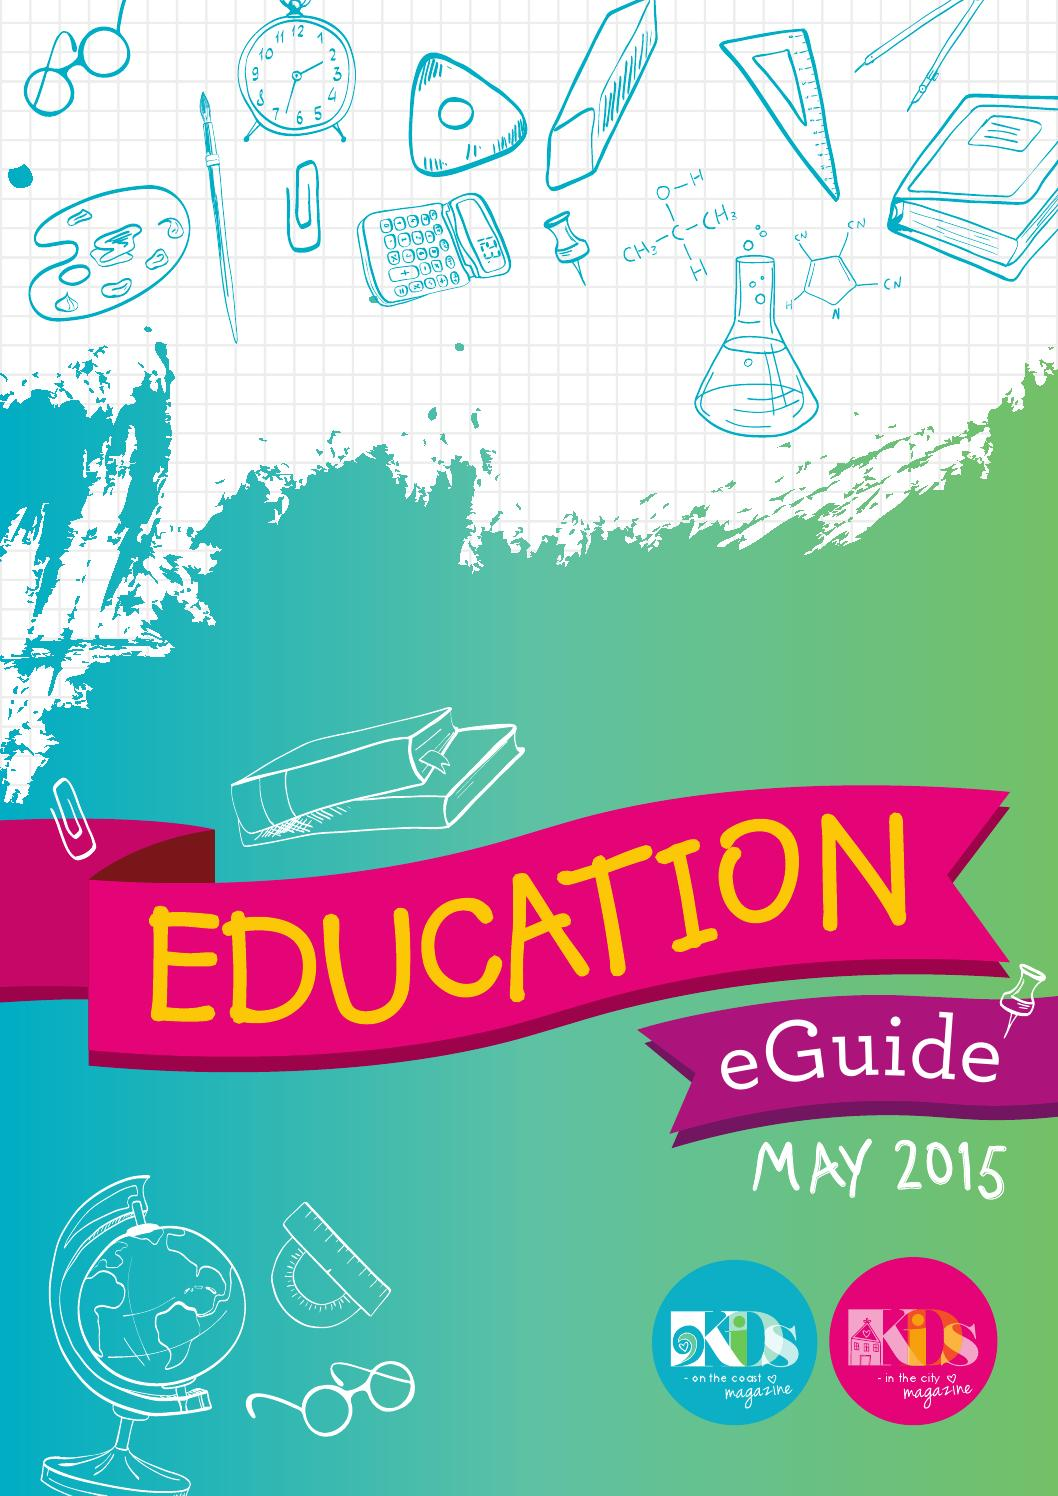 Education Guide 2015 By Shore Media Issuu Petite Cupcakes Aumy Outer